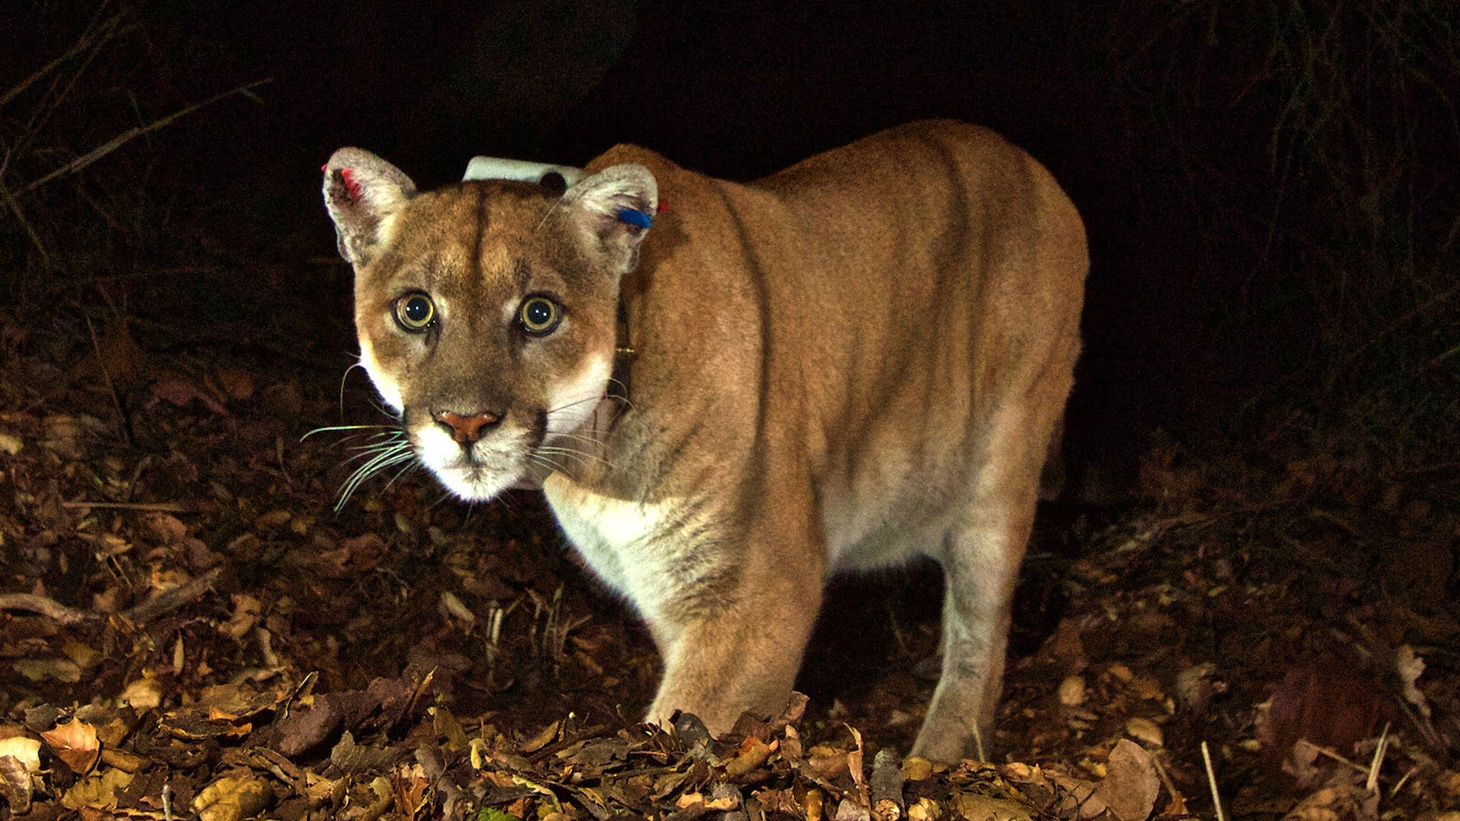 Wild animals need to roam, but our freeways are in the way. Now a proposed bridge over the 101 would allow mountain lions and other wildlife to cross safely over the freeway and improve their access to food and mates.